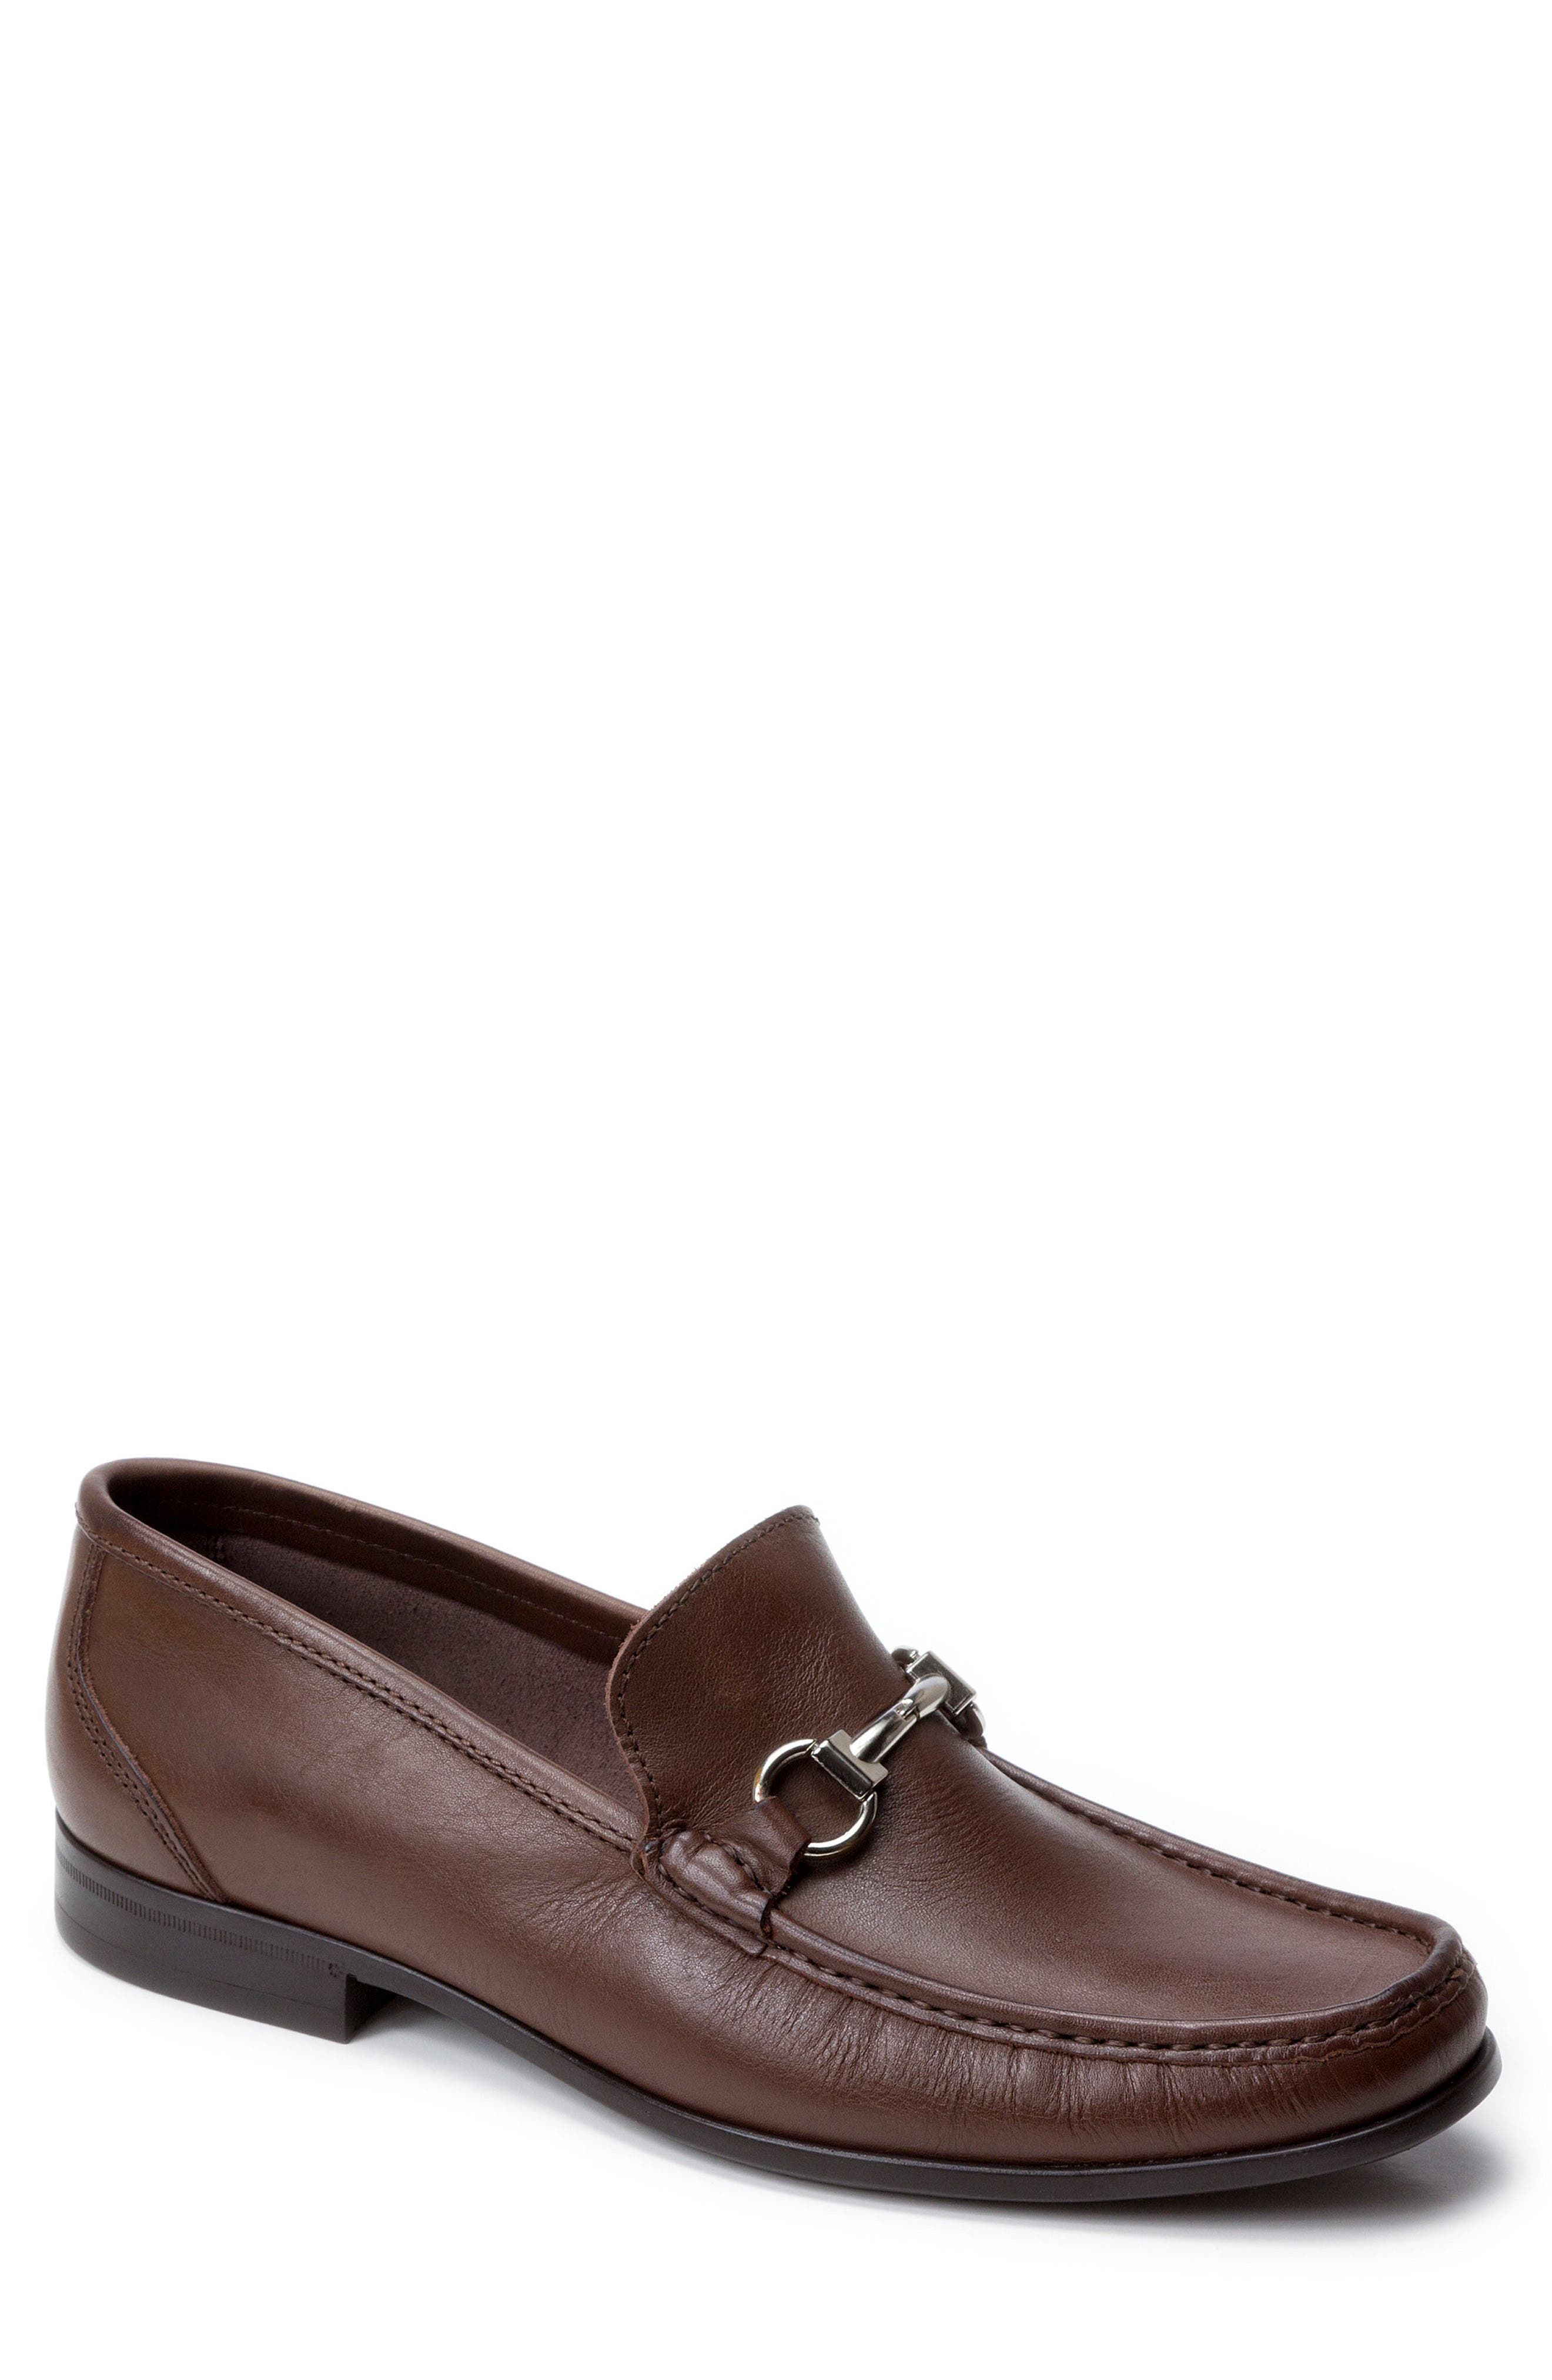 'Malibu' Suede Bit Loafer,                         Main,                         color, BROWN LEATHER